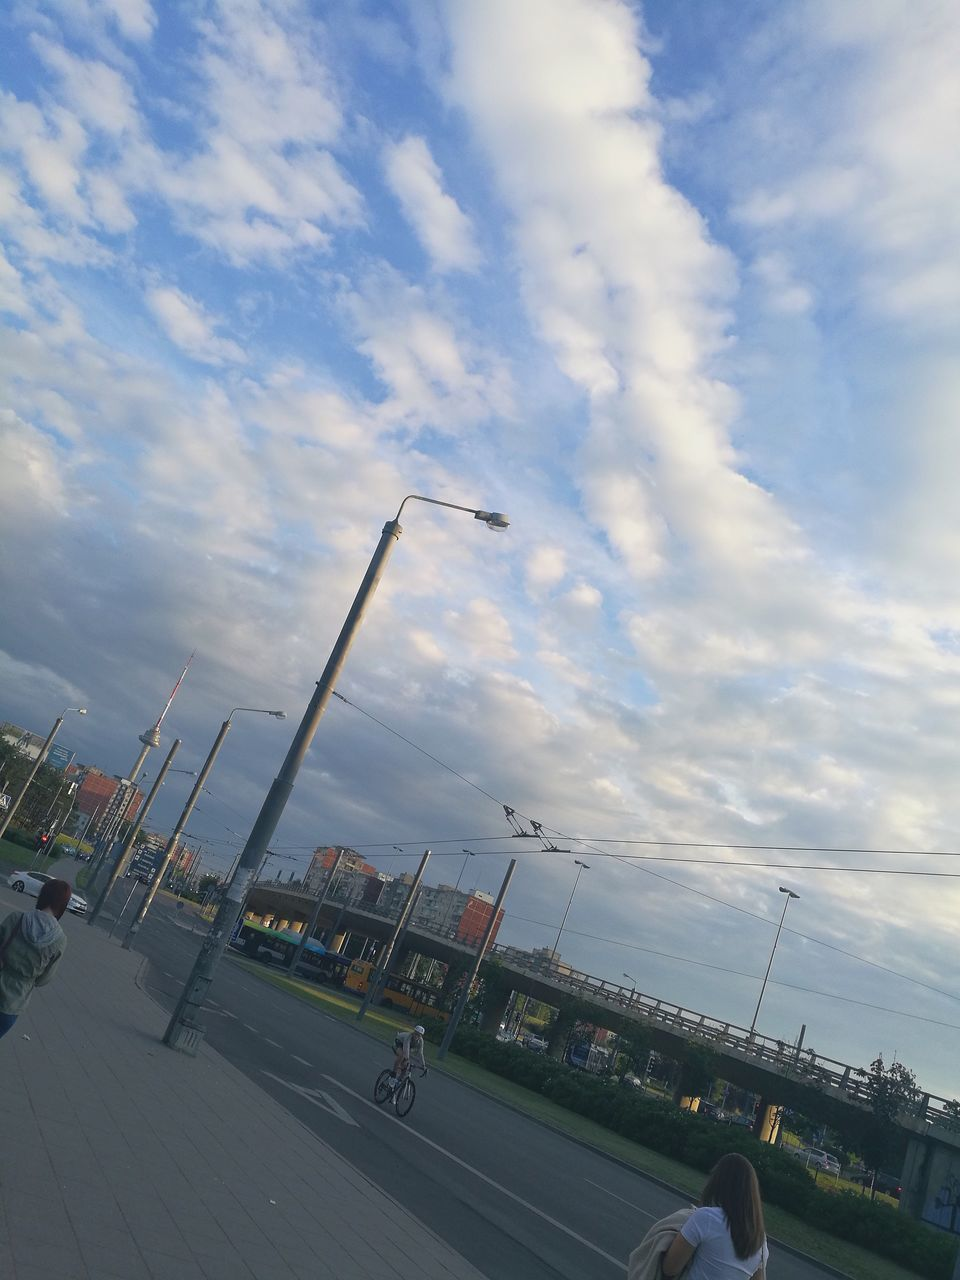 cloud - sky, sky, transportation, airport, land vehicle, air vehicle, airplane, airport runway, day, outdoors, men, architecture, real people, city, people